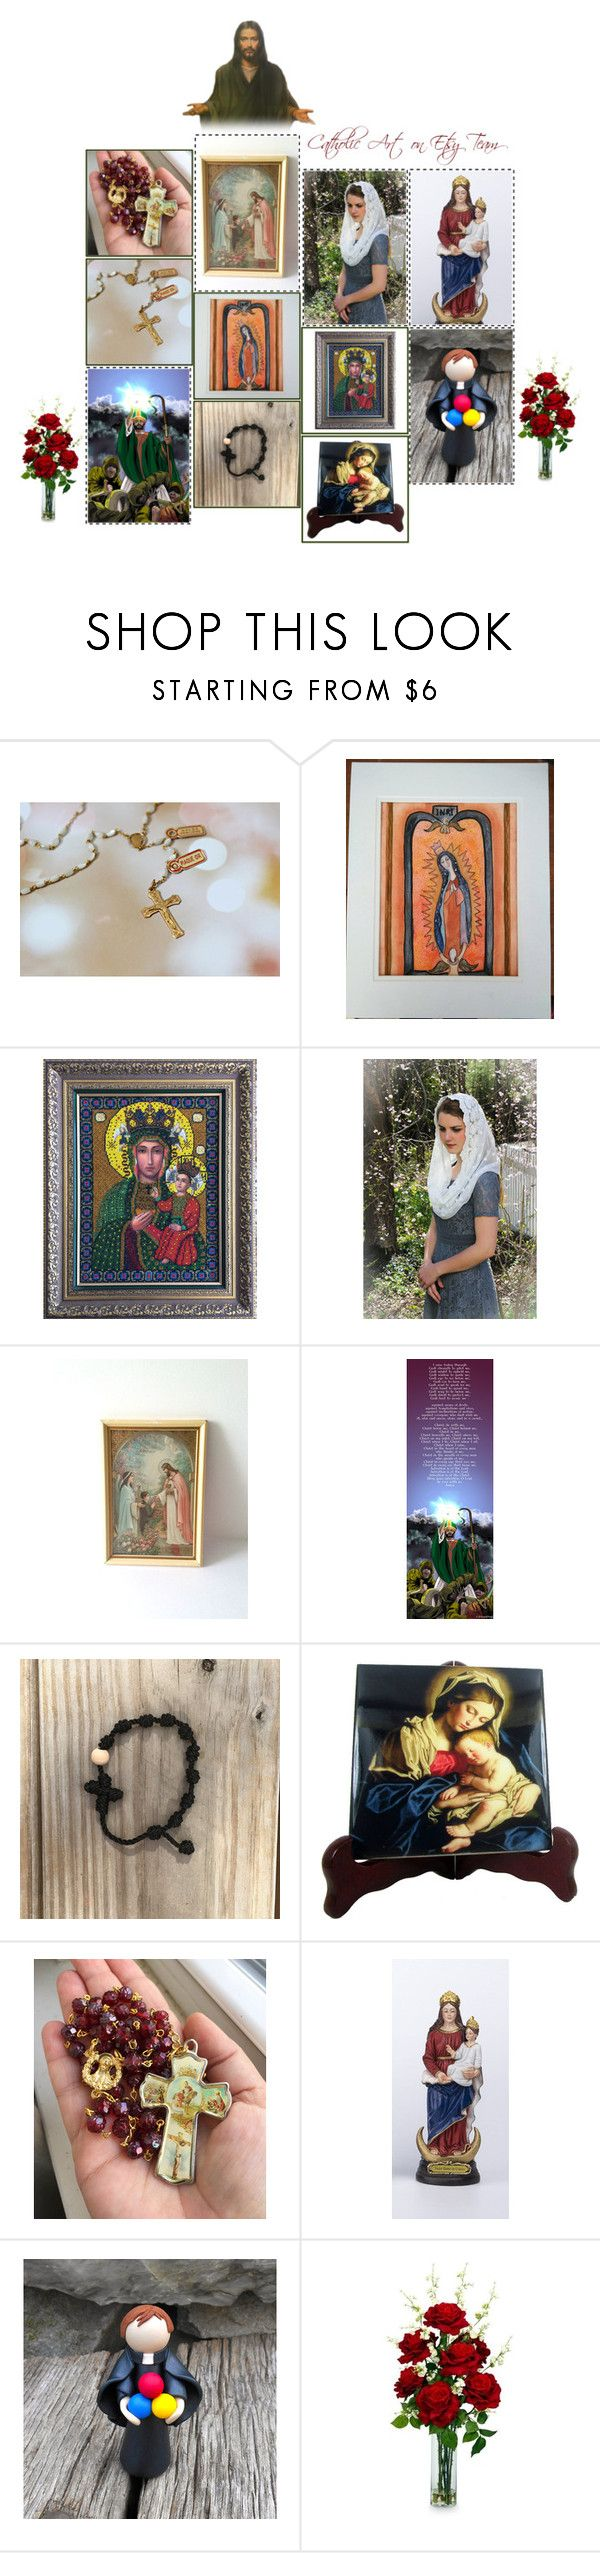 Home interiors and gifts paintings - Religious Art On Etsy By Terrytiles2014 Volume 409 By Terrytiles2014 On Polyvore Featuring Interior